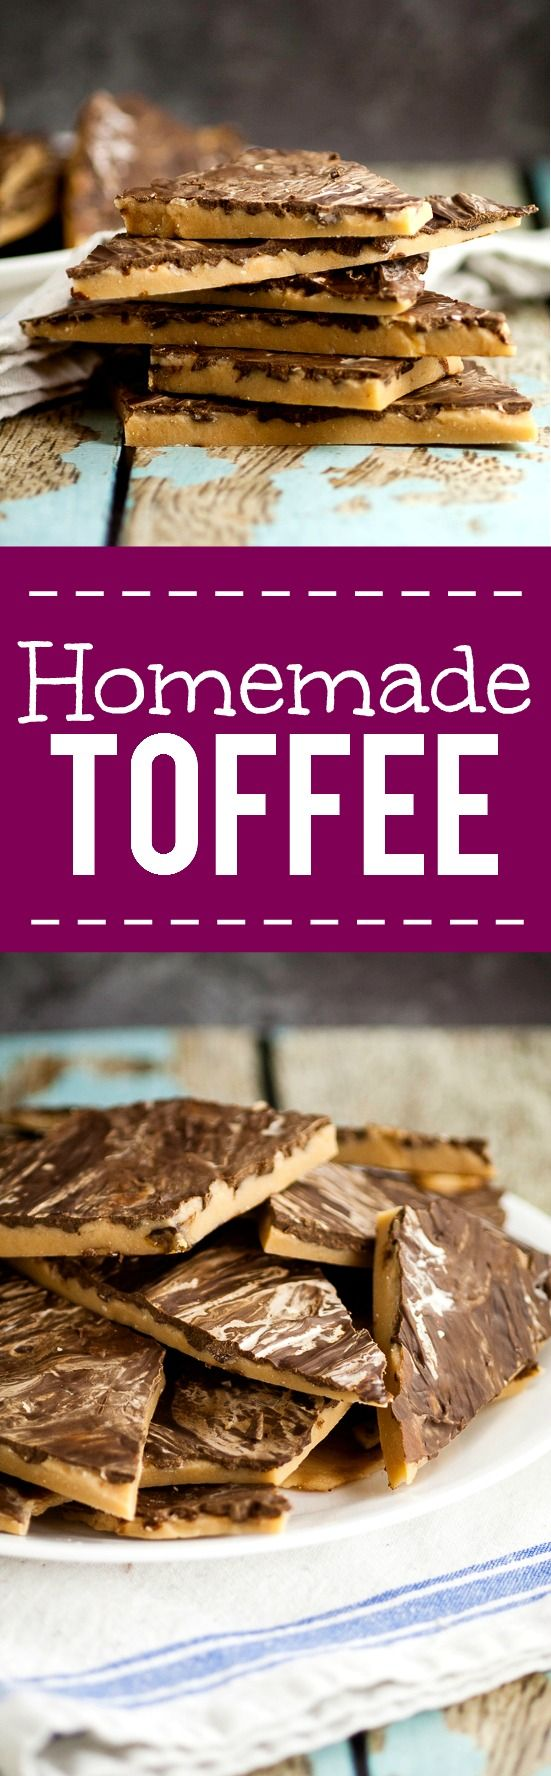 Homemade Toffee Recipe -Who knew making homemade chocolate toffee could be…